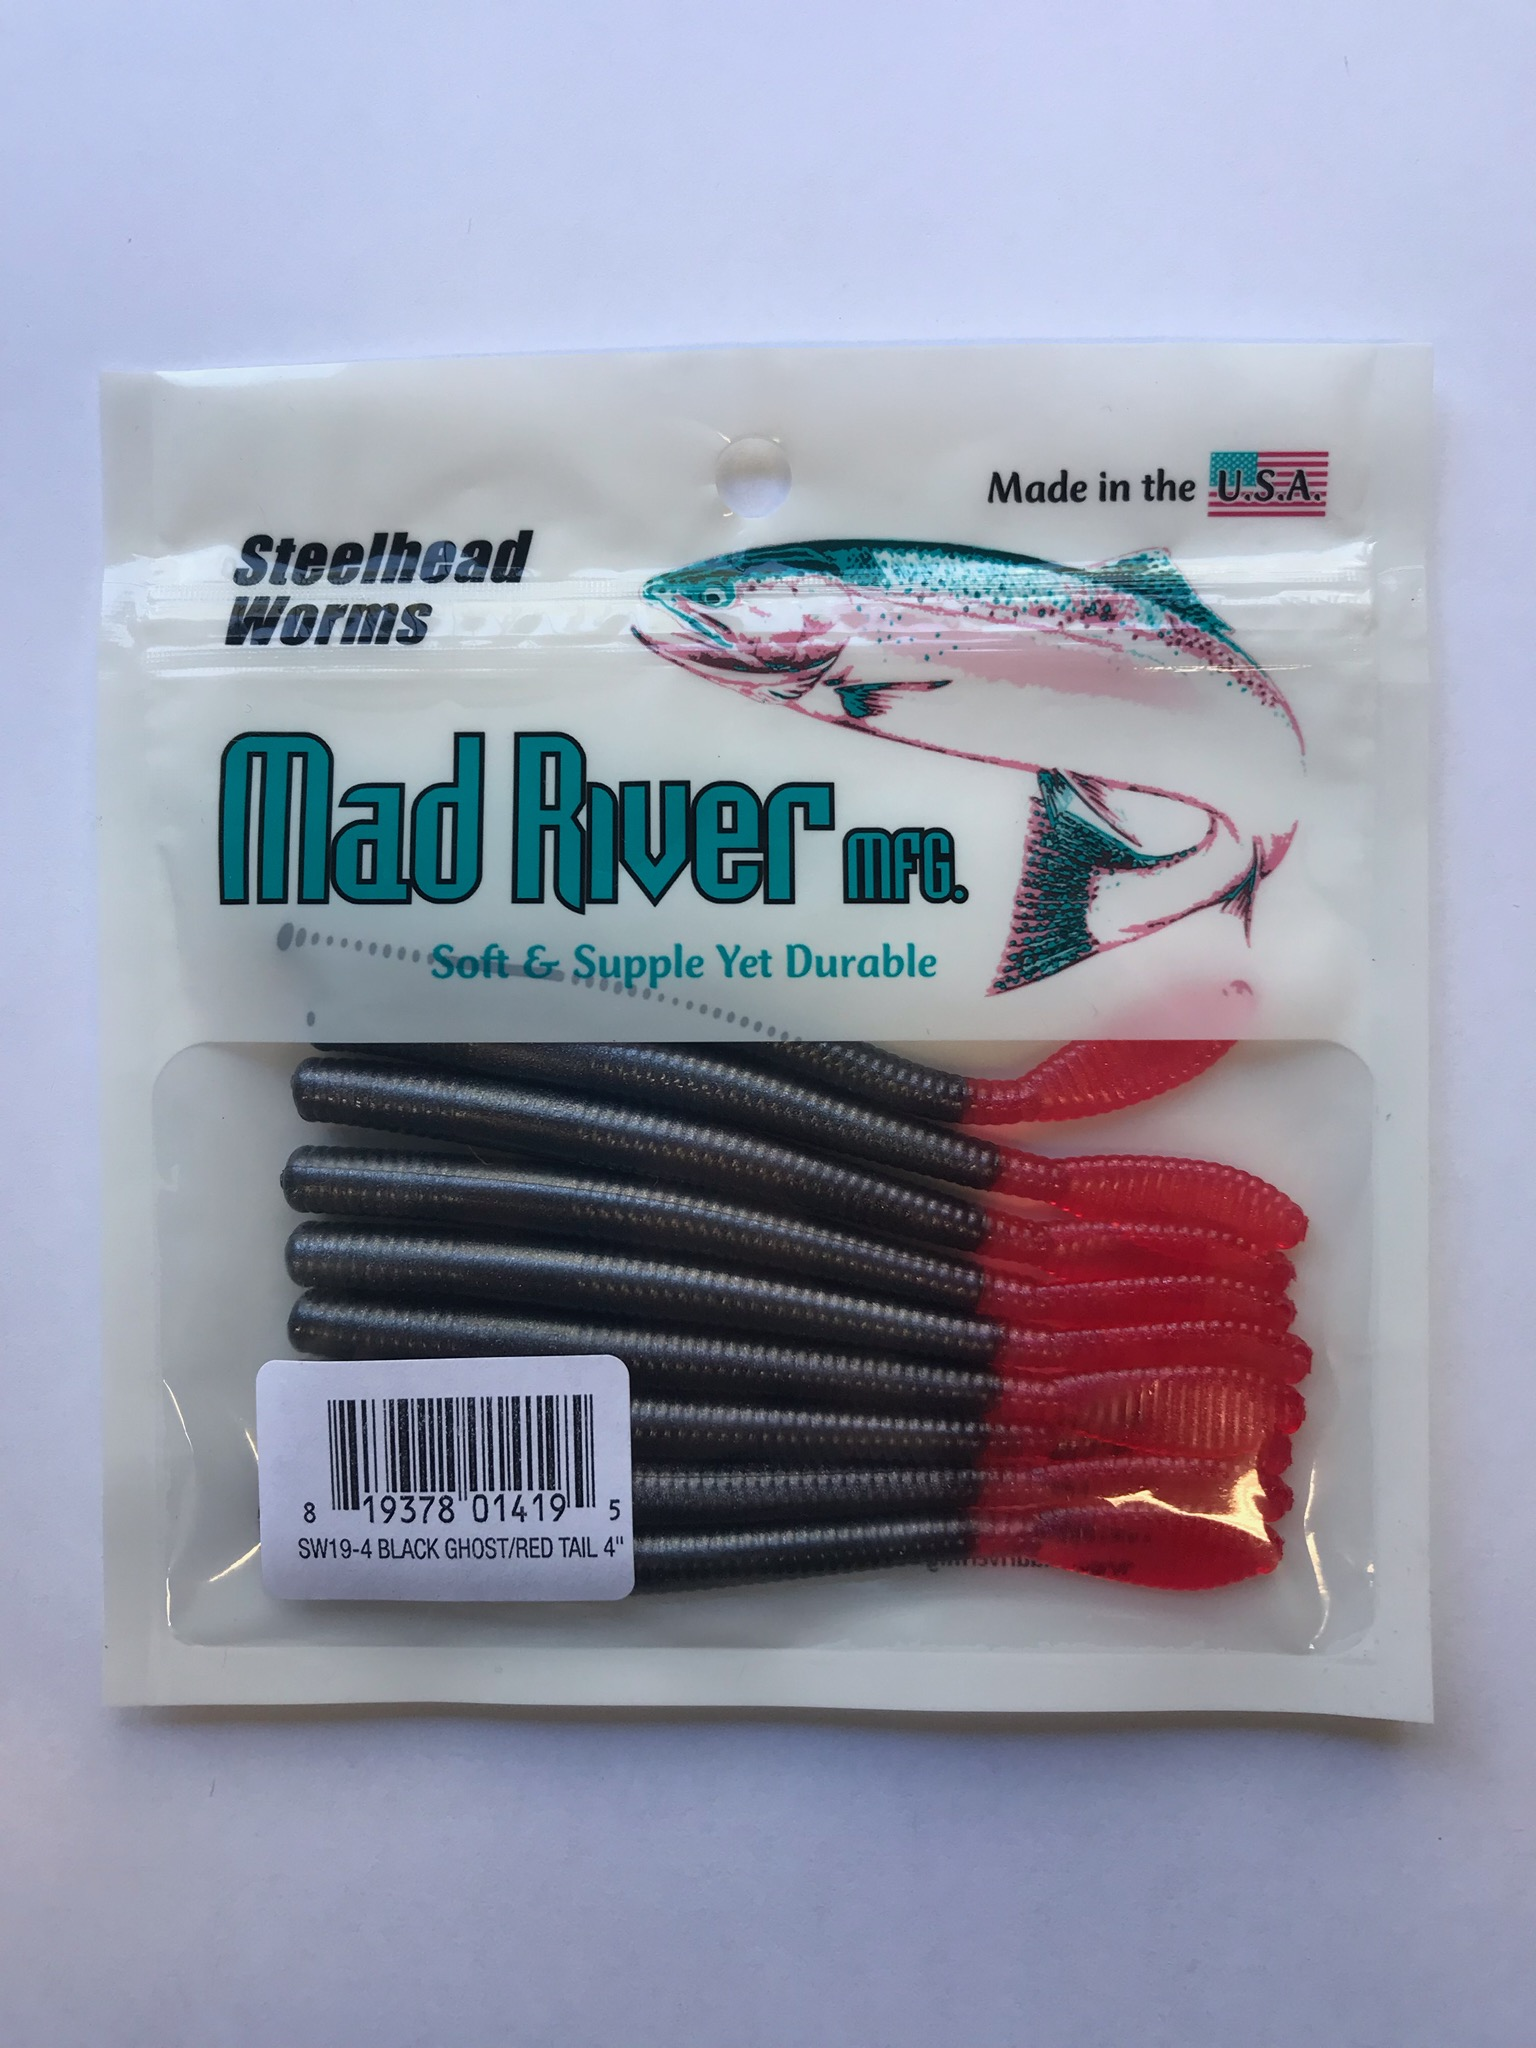 Steelhead Worms: Black Ghost/Red Tail